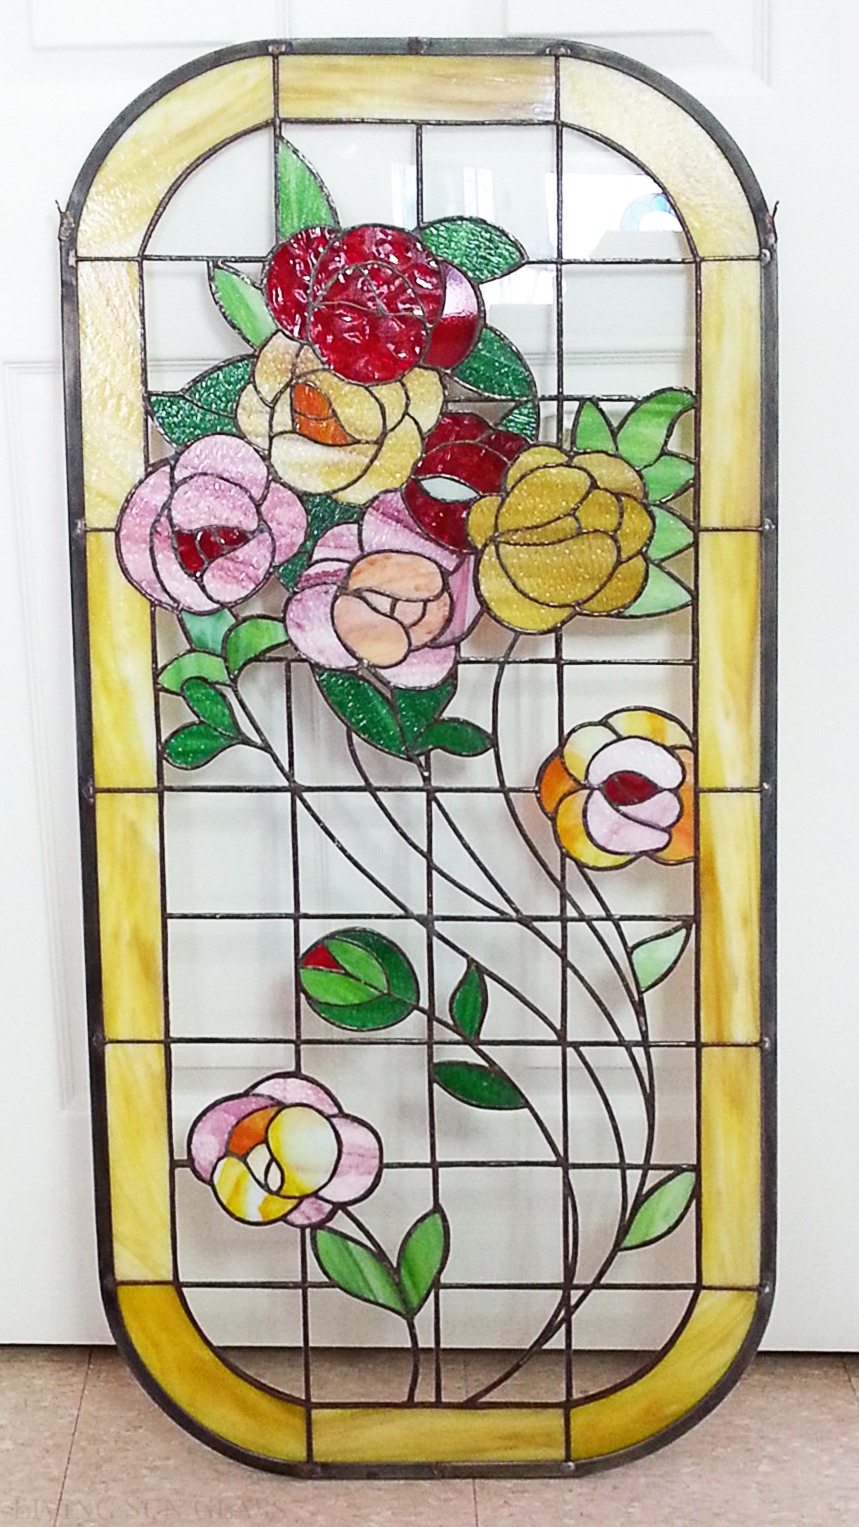 the stained glass window repaired